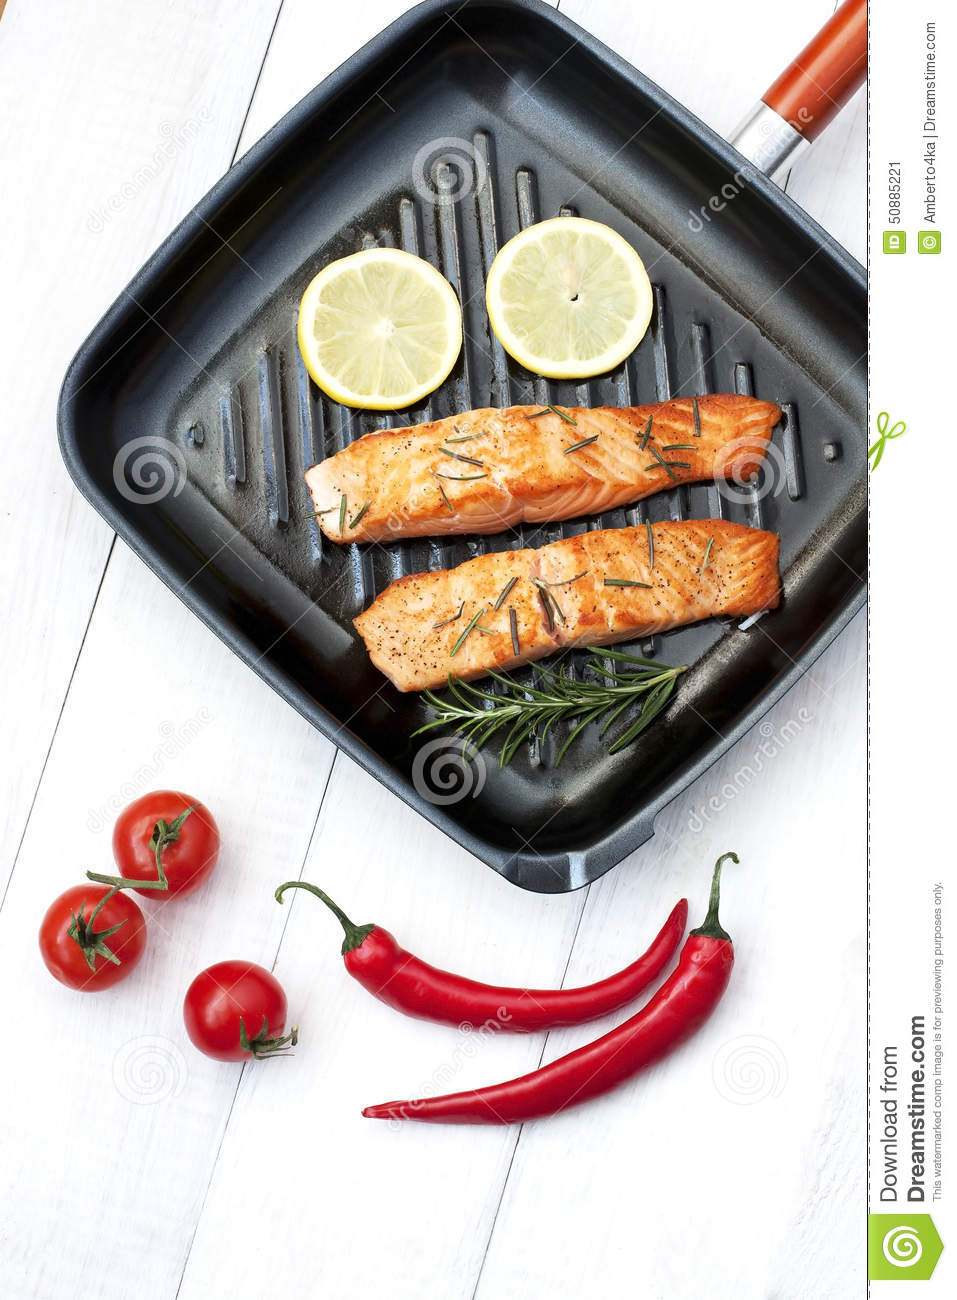 Salmon Fillet On Grill Pan Ready To Cook Stock Photo Image: 50885221